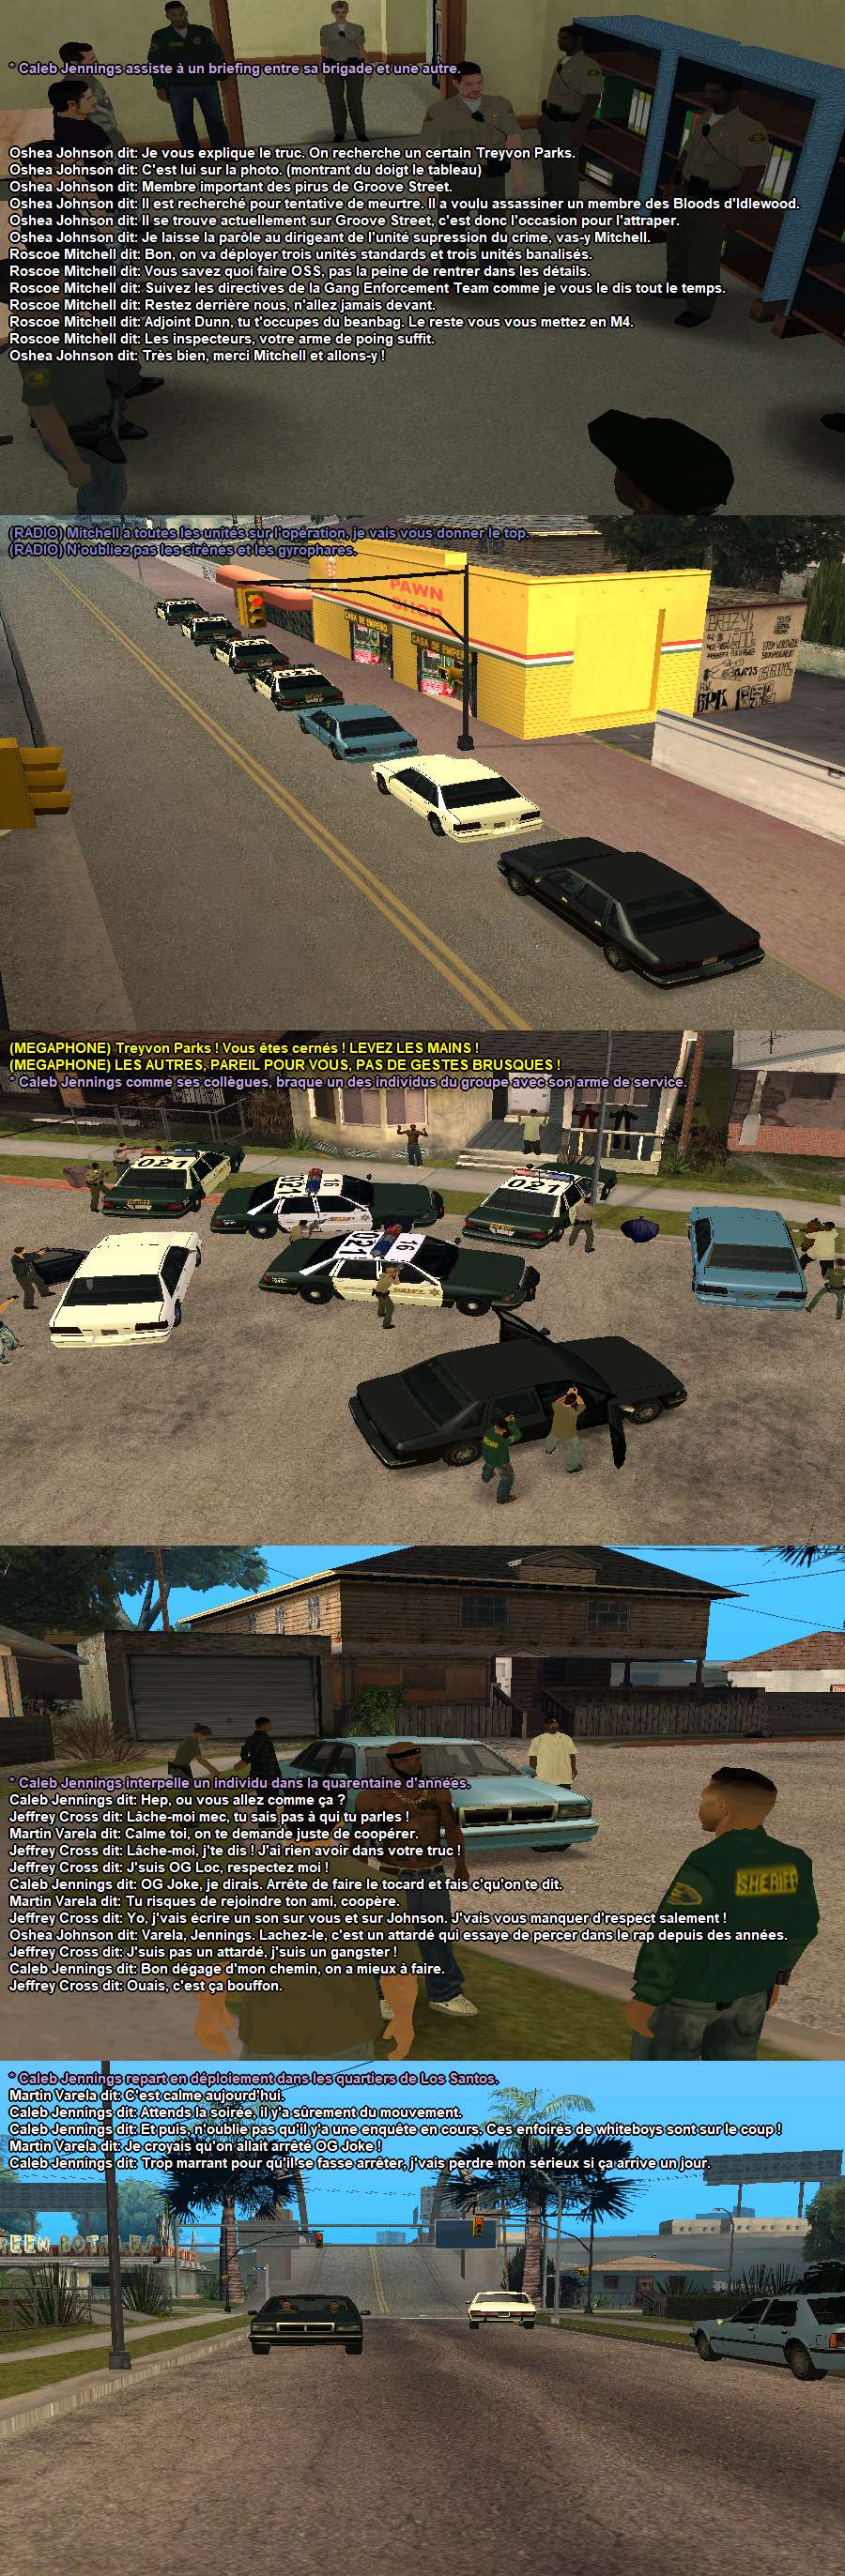 Los Santos Sheriff's Department - A tradition of service (8) - Page 16 1535382023-a